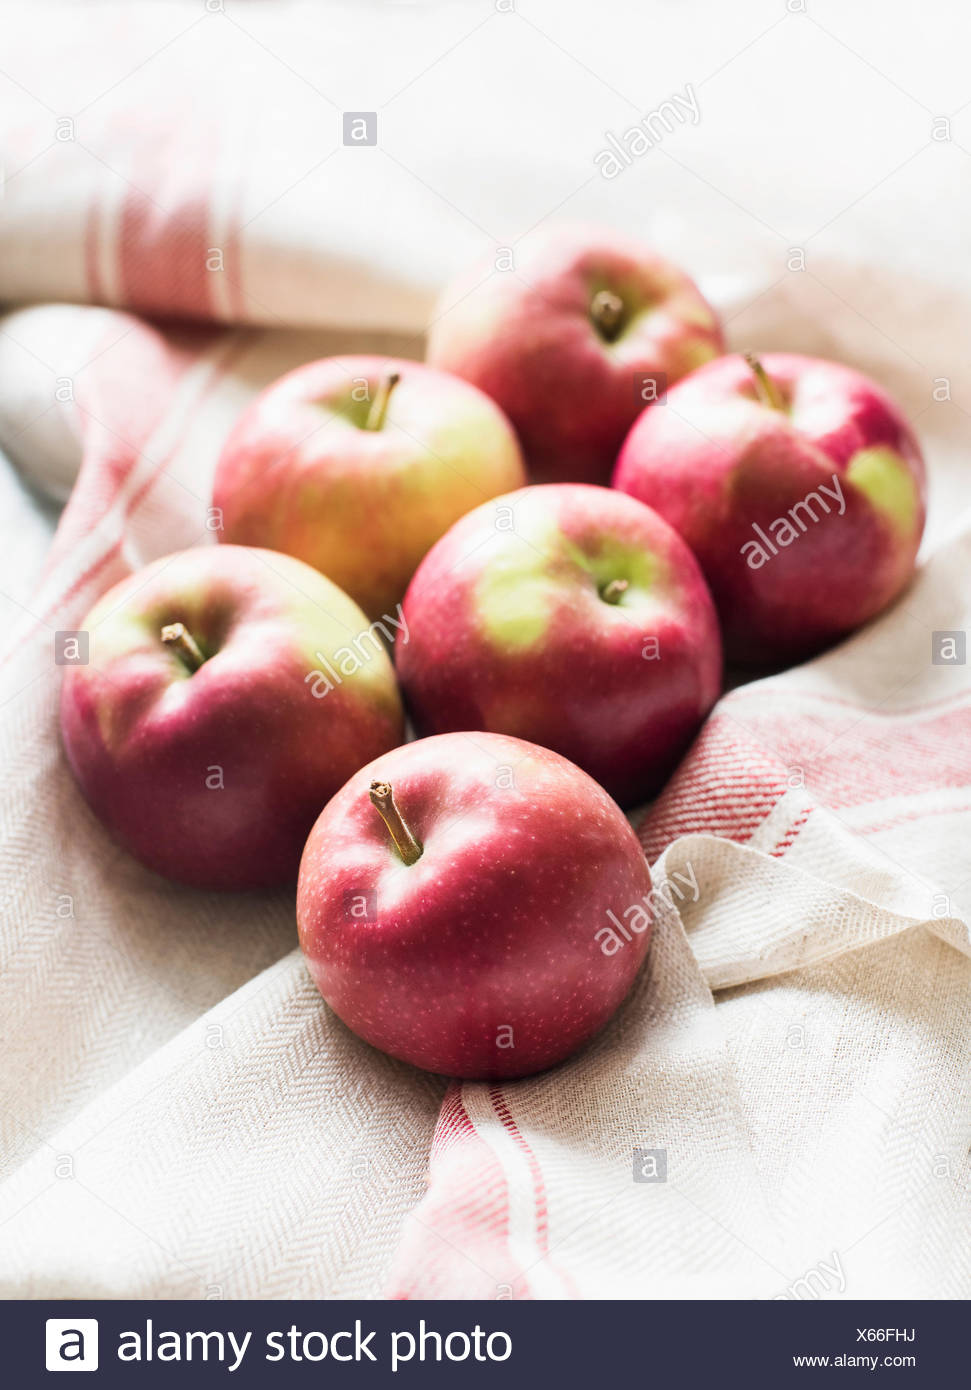 Six red apples on linen kitchen cloth, close-up - Stock Image